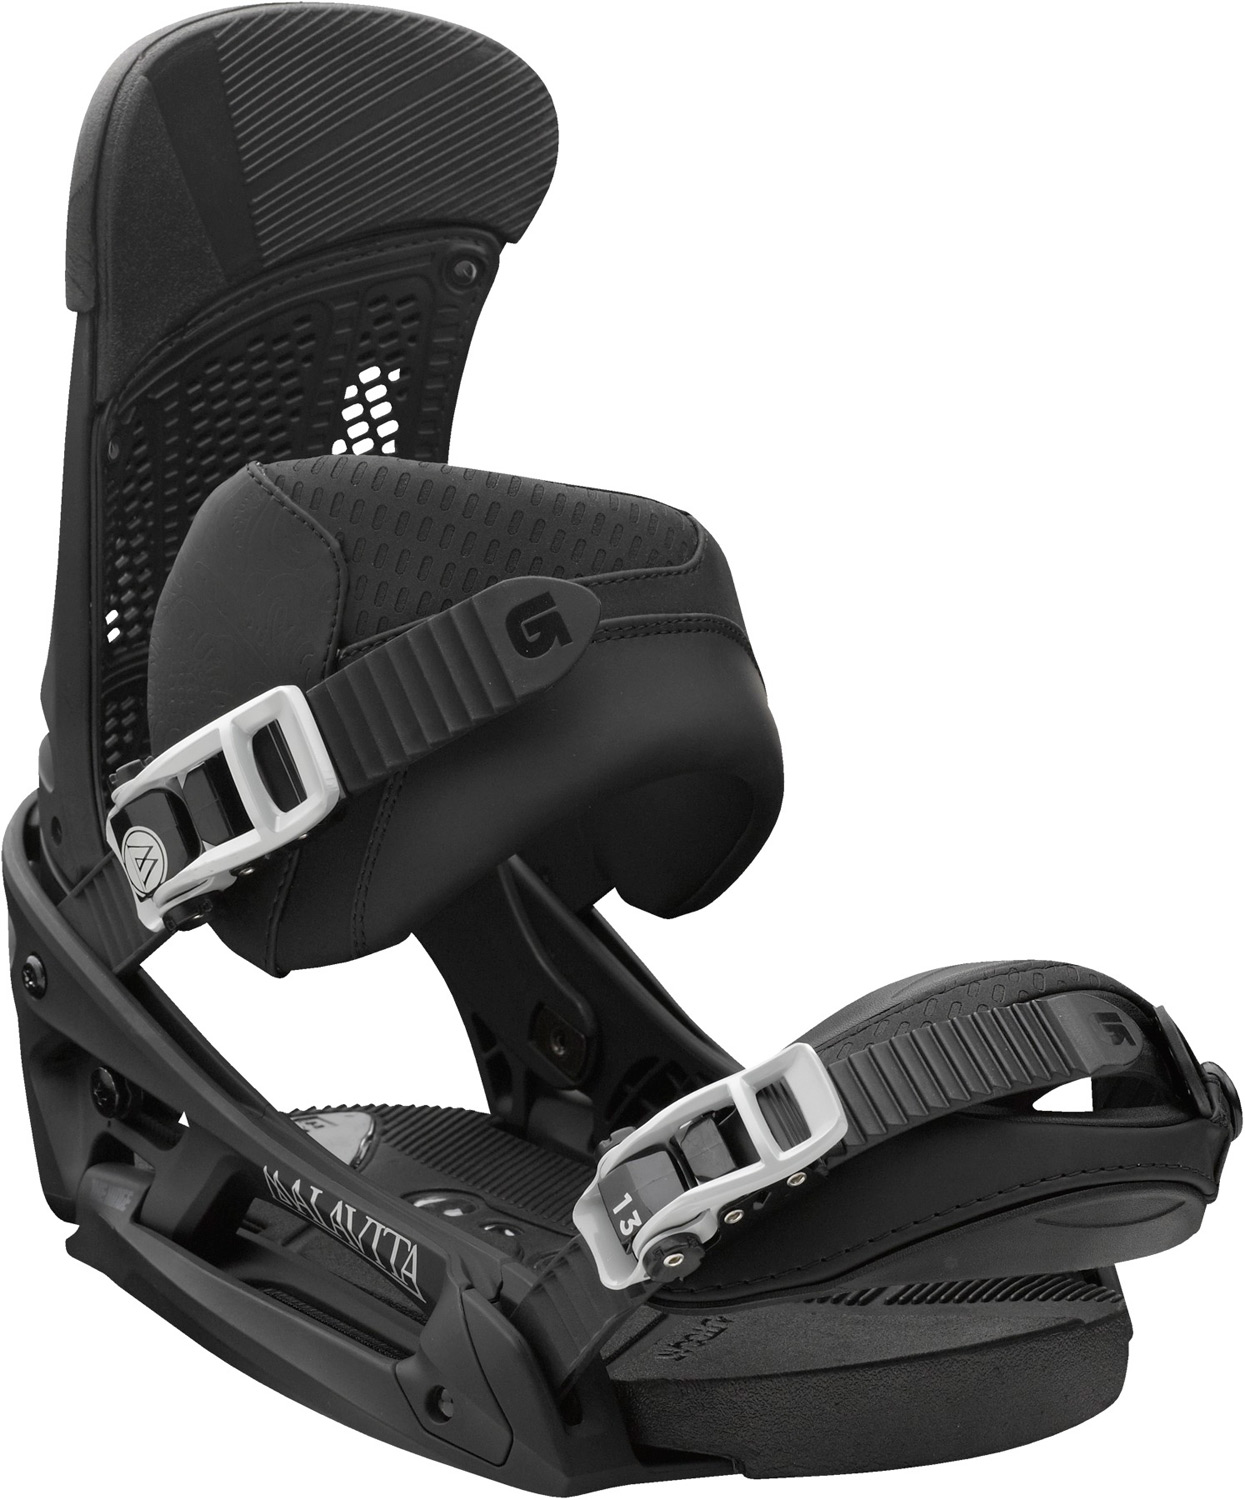 Snowboard Soft-flexing freestyle with a mean demeanor.Key Features of the Burton Malavita EST Snowboard Bindings: Response: 6 Baseplate: Dual-Component EST Featuring The Hinge with 30% Short- Glass/Nylon Composite Spar and 30% Short-Glass/Nylon Composite Lower Hi-Back: Canted Living Hinge Zero-Lean Hi-Back with DialFLAD and Heel Hammock Straps: NEW Asym React Strap and Gettagrip Capstrap Buckles: Dual-Component Smooth Glide Buckles Cushioning: Removable AutoCANT SensoryBED Cushioning System with B3 Gel Rides Exclusively with Burton Boards Featuring The Channel Features Re-Ground Materials in Baseplate and Hi-Back to Reduce Waste - $202.95